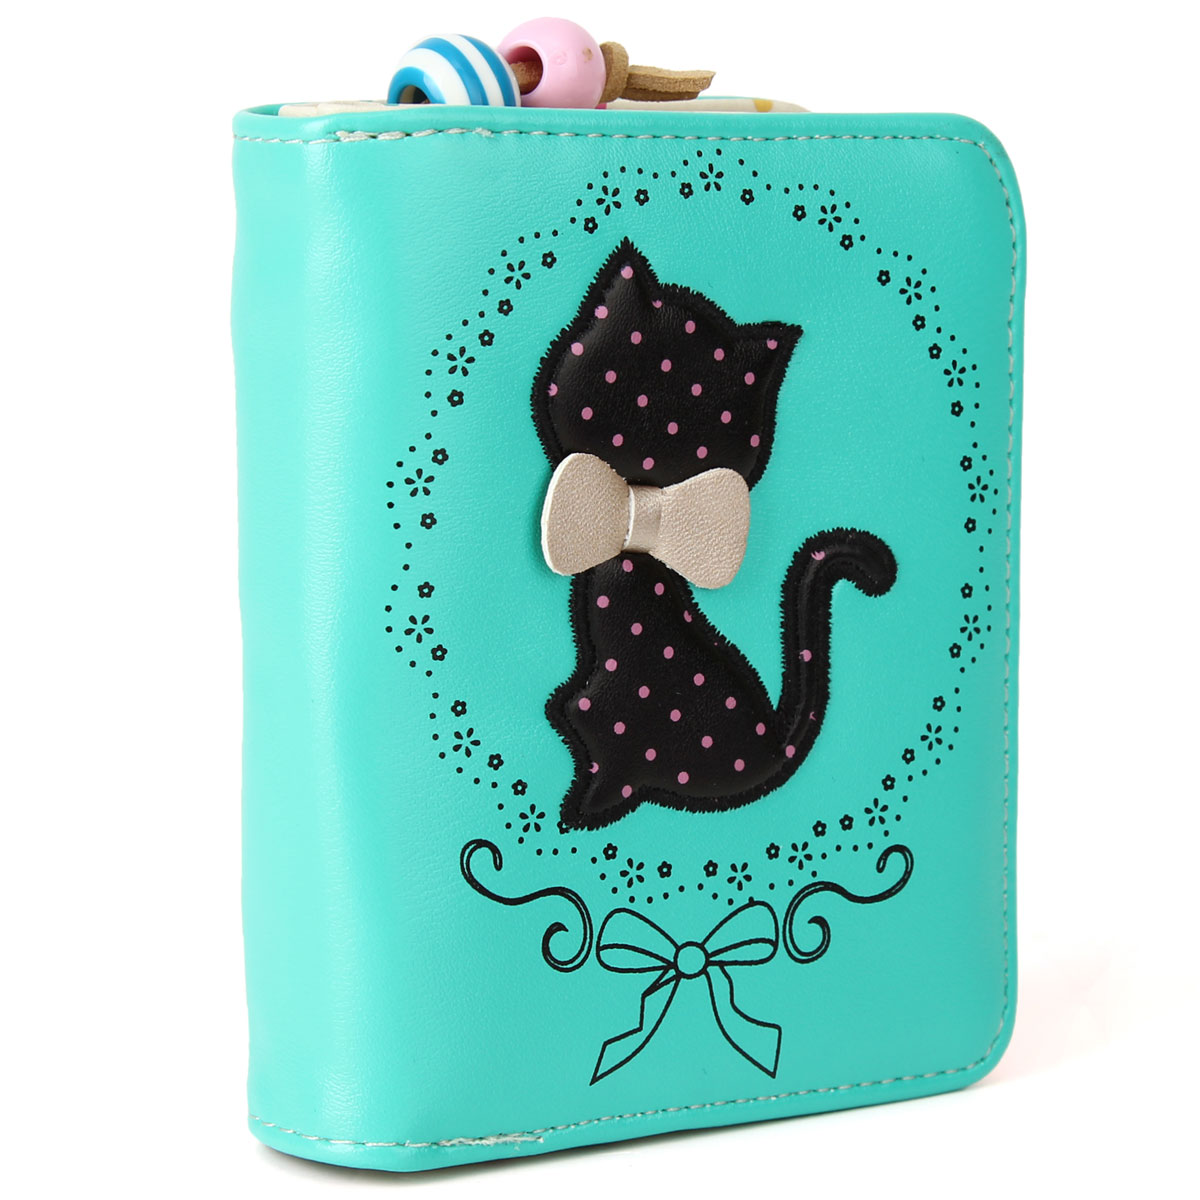 AEQUEEN Leather Wallet Women Short Purse Small Lovely Cartoon Cat Coin Purses Bow Girls Small Wallets Notecase Bowknot Purse fifty shades darker anastasia серебристая маска маскарадная